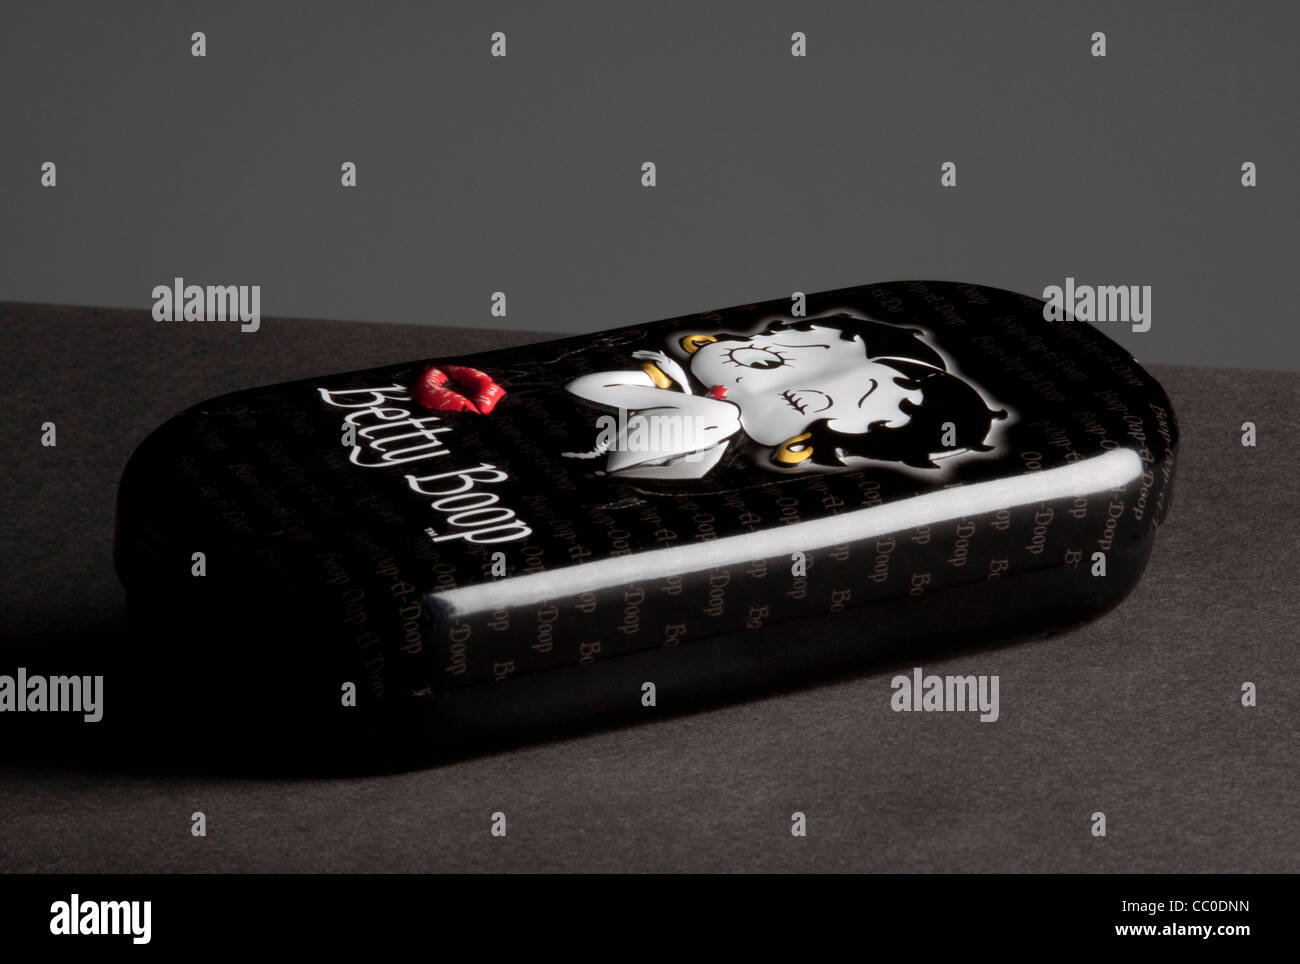 A spectacle case in Betty Boop livery - Stock Image